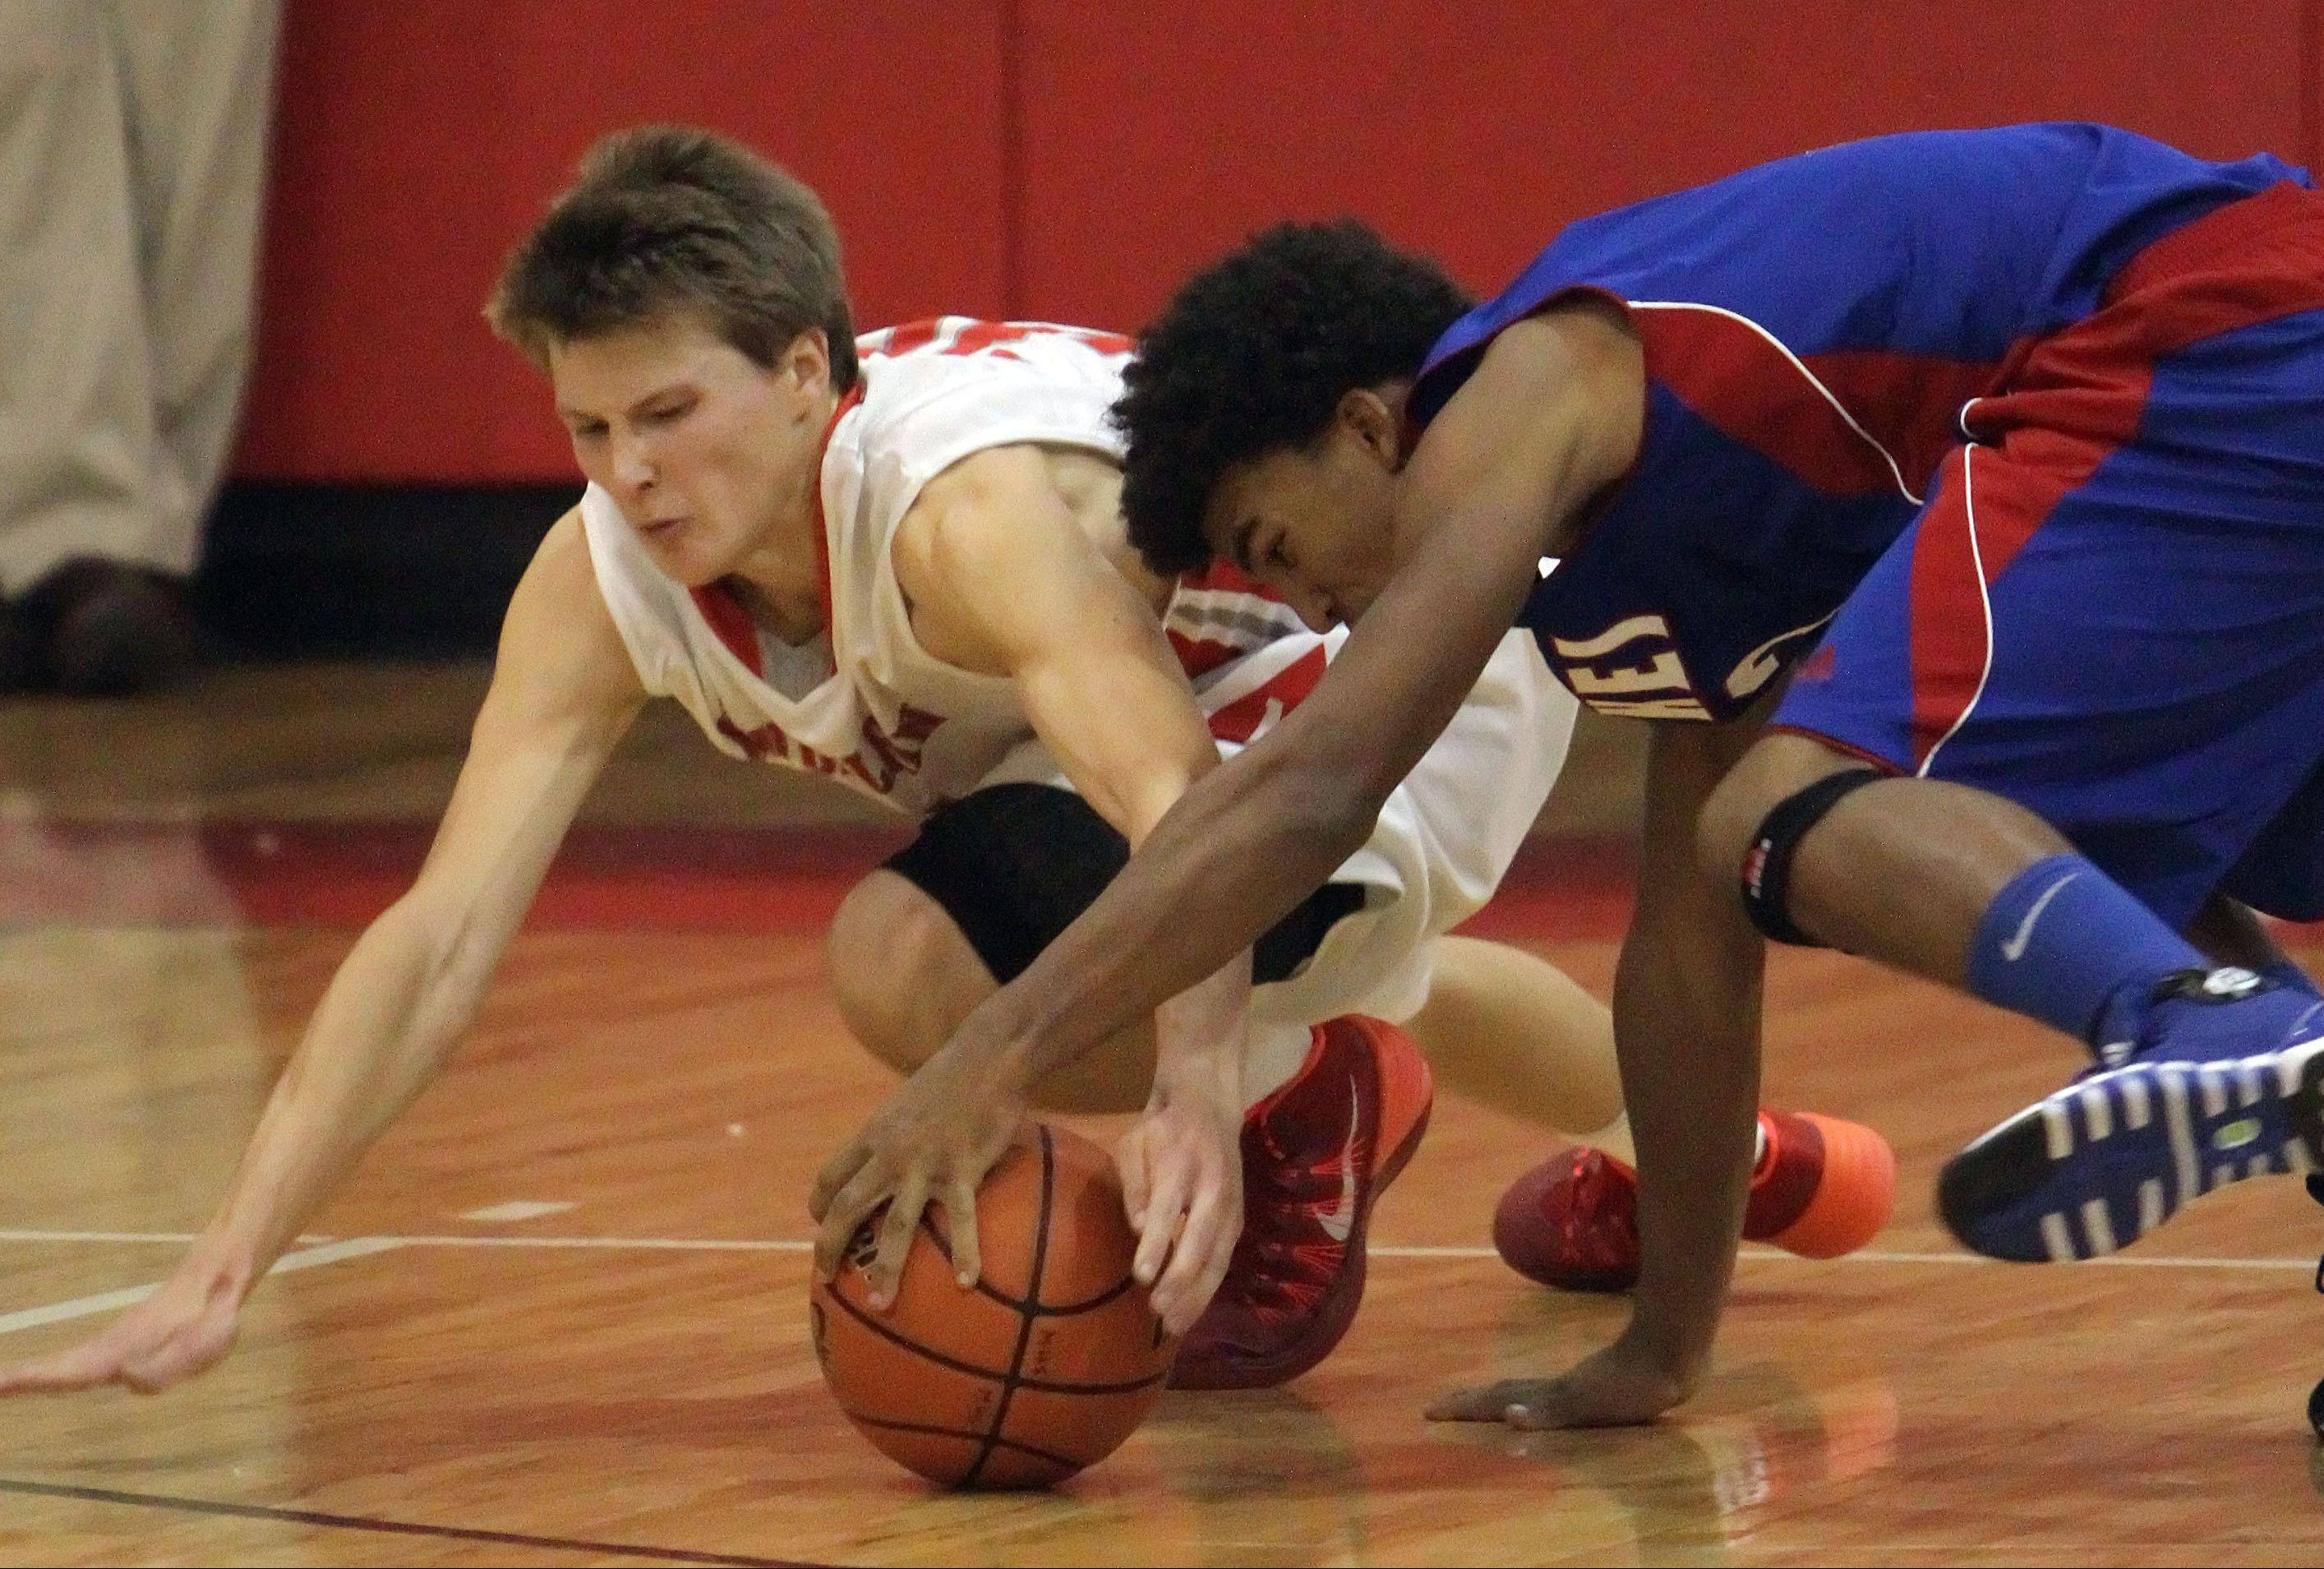 Mundelein's J.T Michalski, left, Lakes' Devyn Cedzidlo scramble for a loose ball Tuesday at Mundelein.